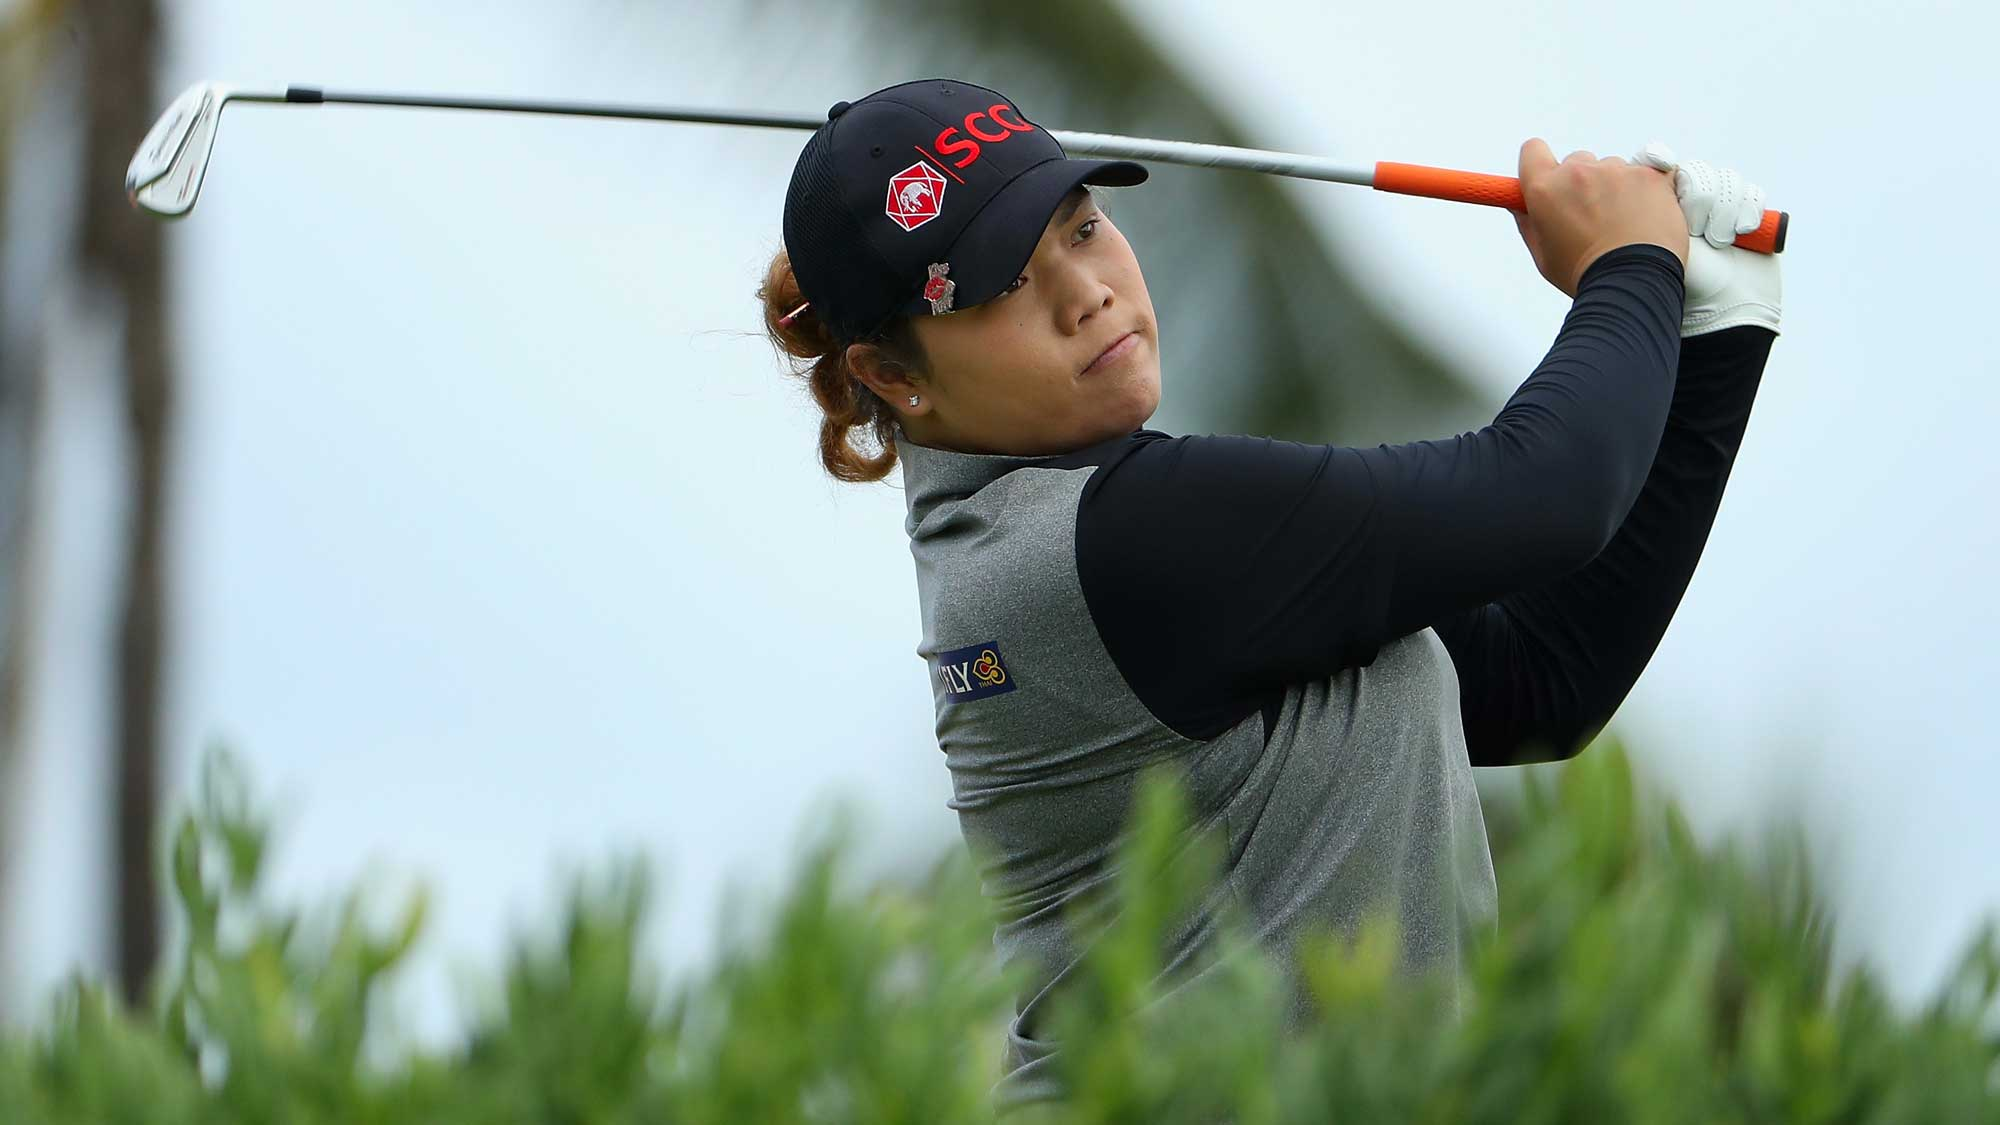 Ariya Jutanugarn of Thailand plays a tee shot on the 13th hole during the second round of the LPGA LOTTE Championship Presented By Hershey